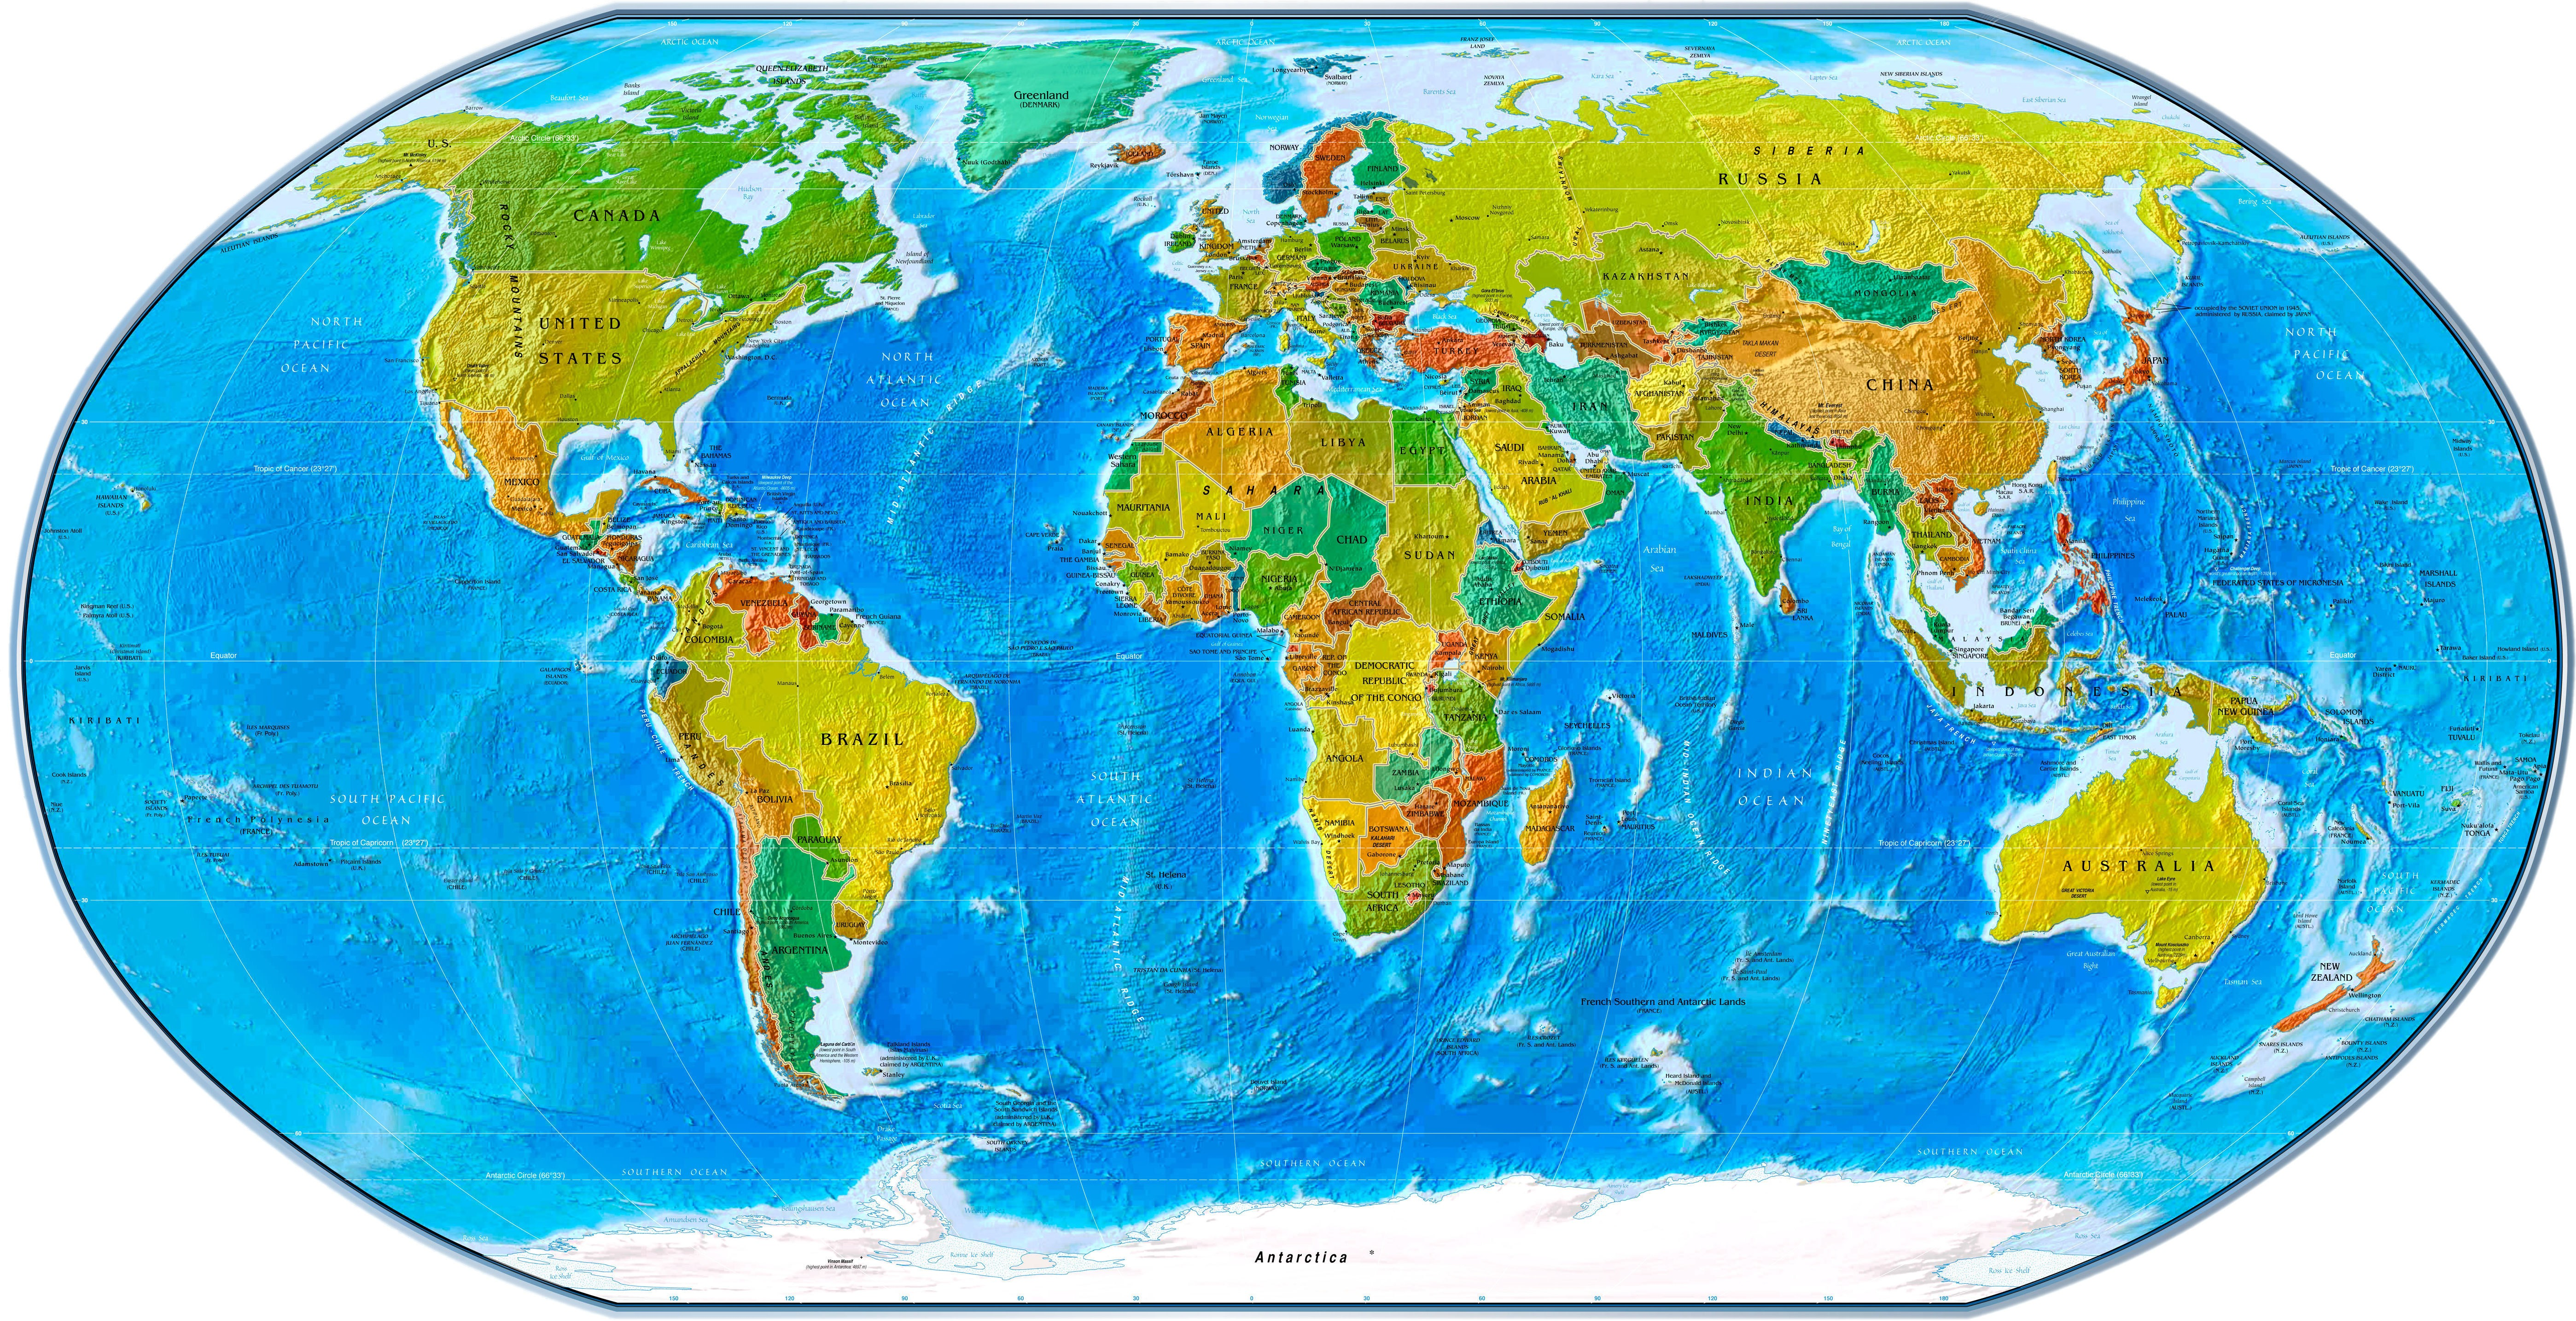 Clipart free world map image library download world map clipart free download Fresh World maps clip art ... image library download